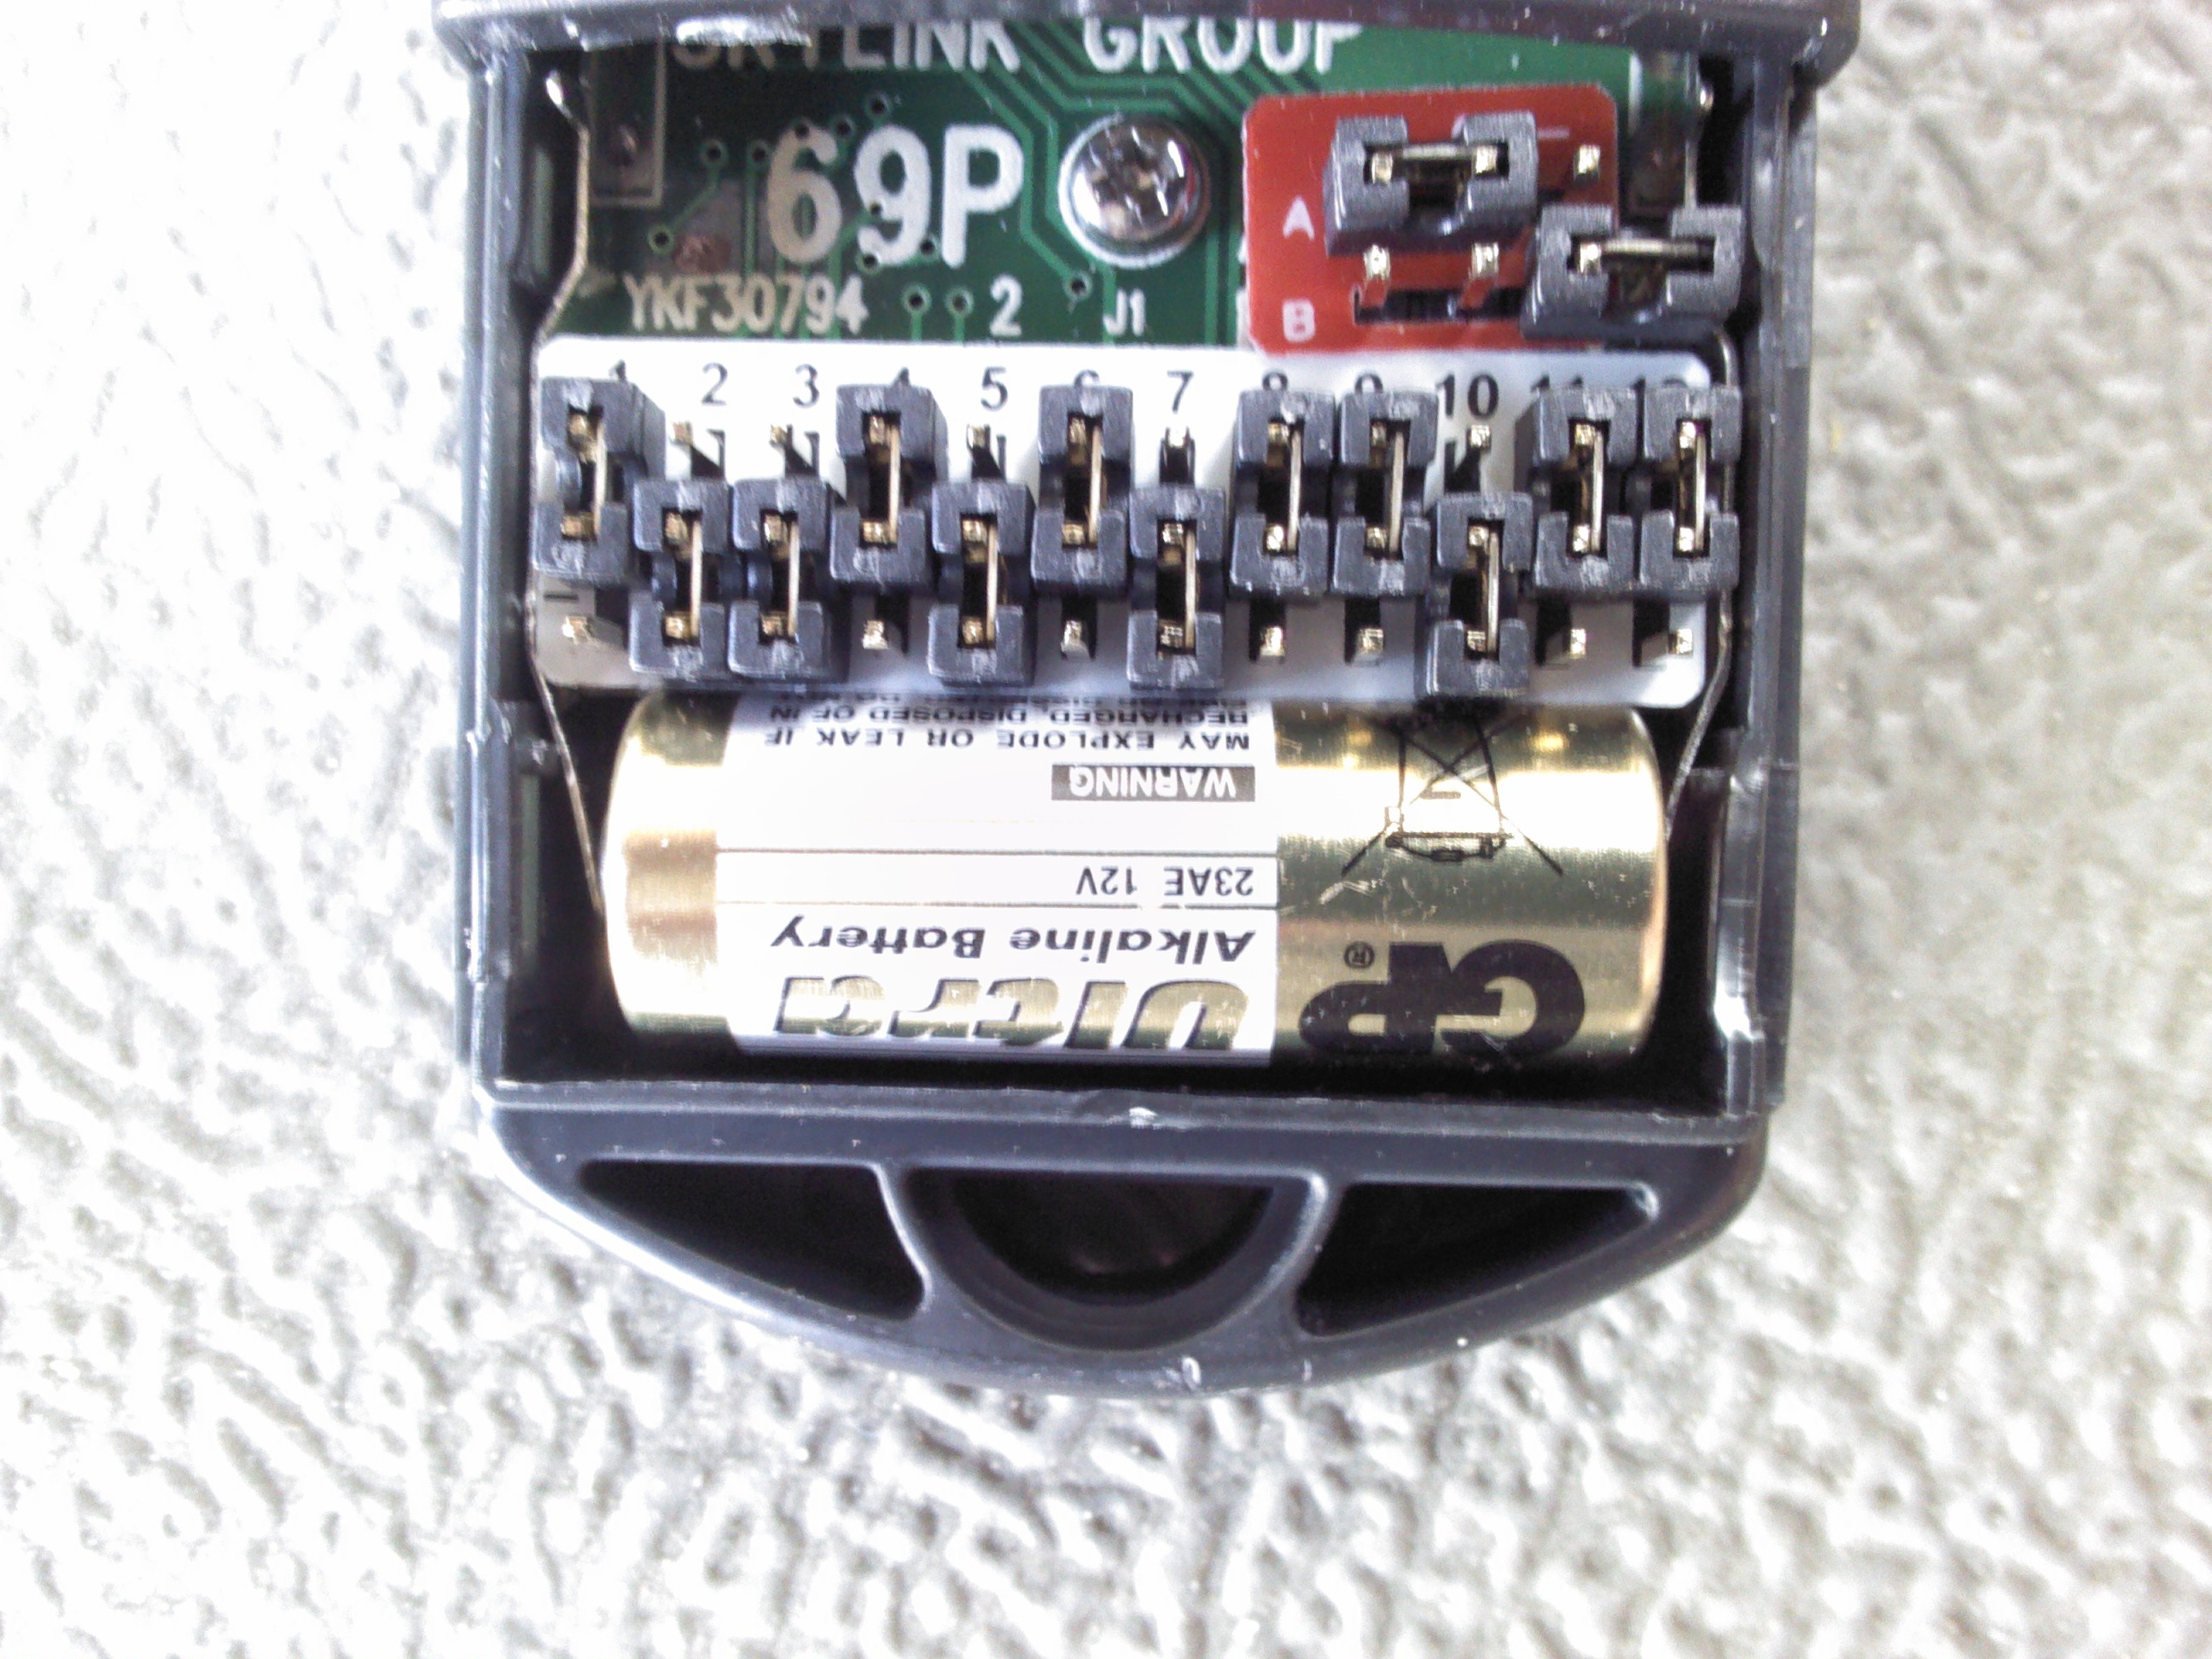 Genie 912 Remote Control Replacement